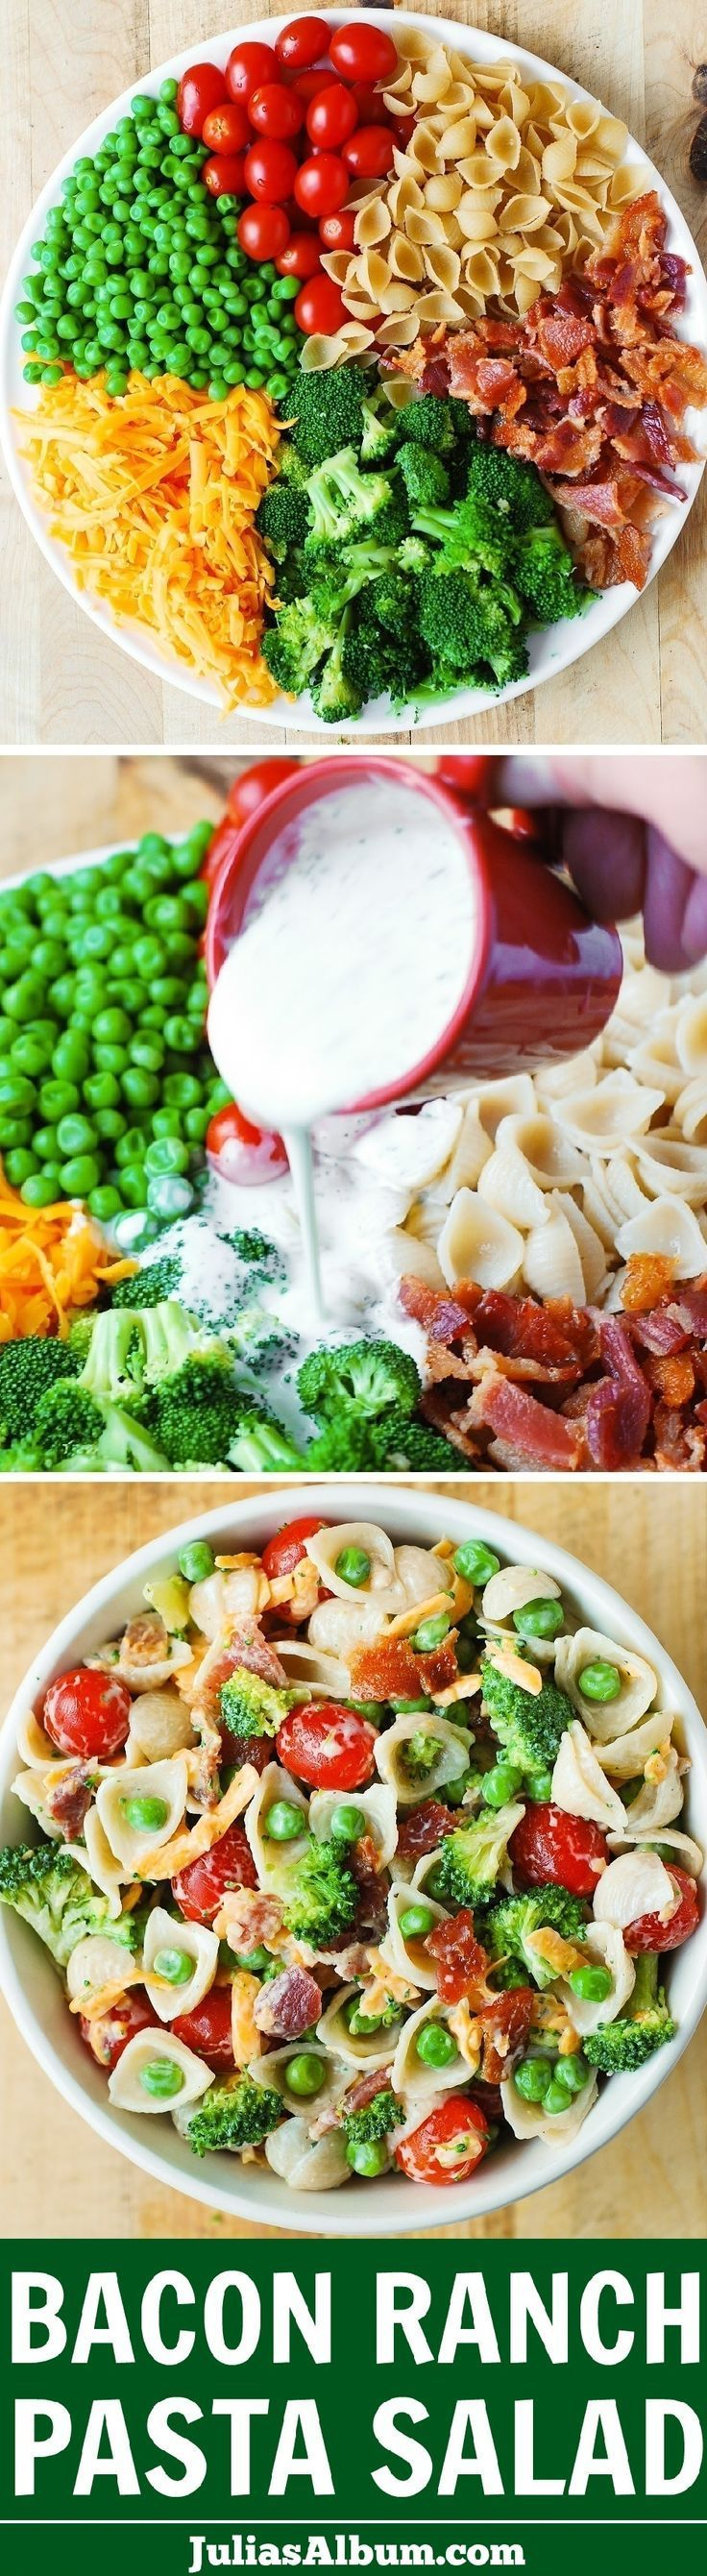 Bacon Ranch Pasta Salad - LOADED with veggies (broccoli, cherry tomatoes, sweet peas), sharp Cheddar cheese, pasta shells, and bacon! Healthy comfort food! #PastaFoodRecipes